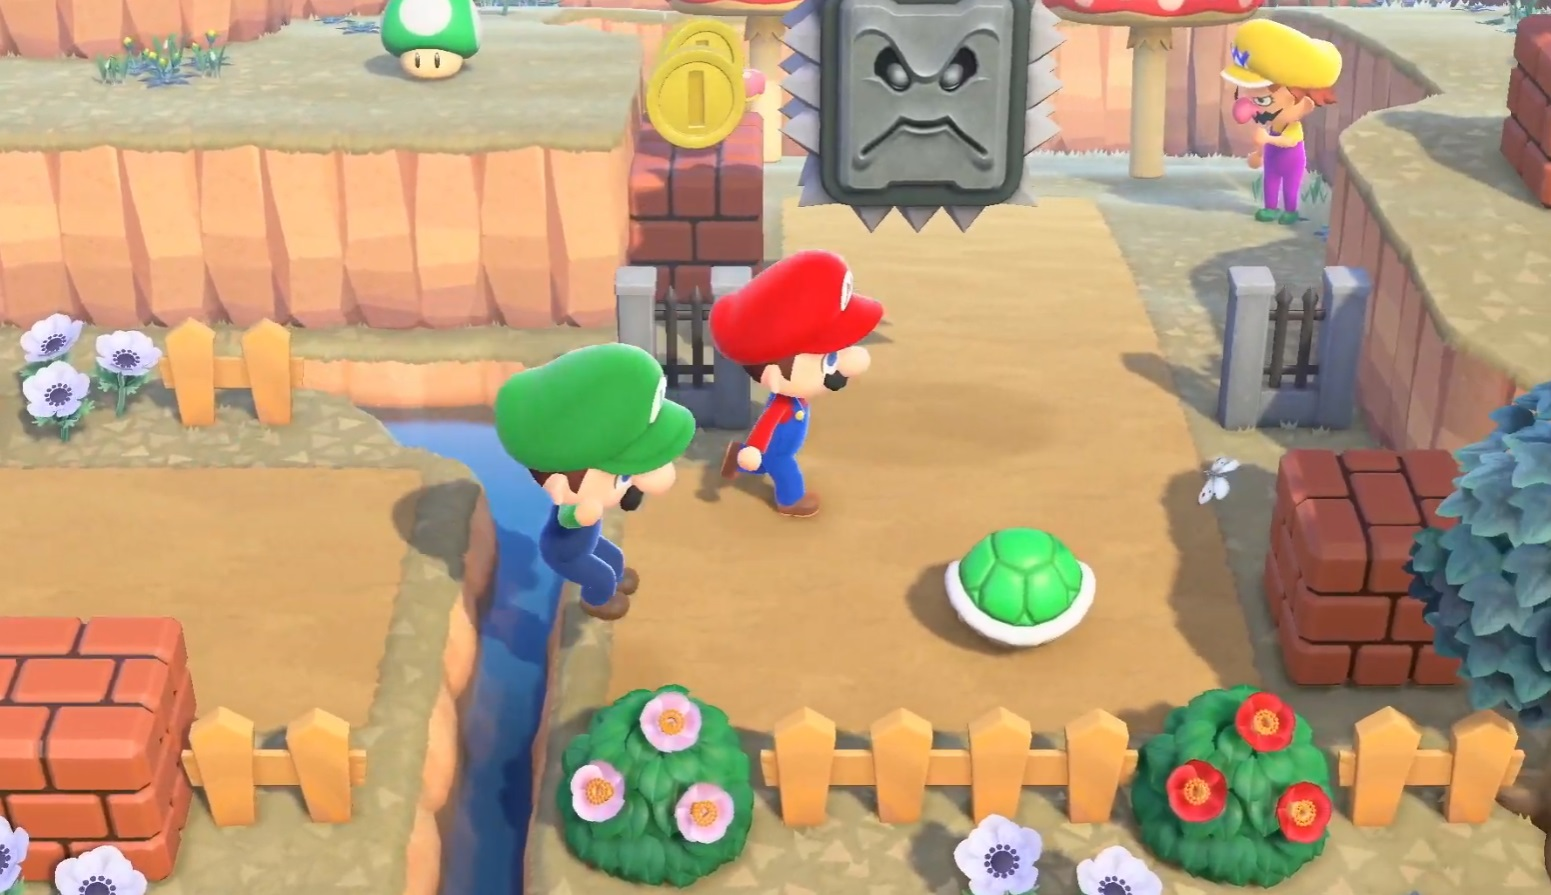 In-game Mario merch is coming to Animal Crossing: New Horizons screenshot